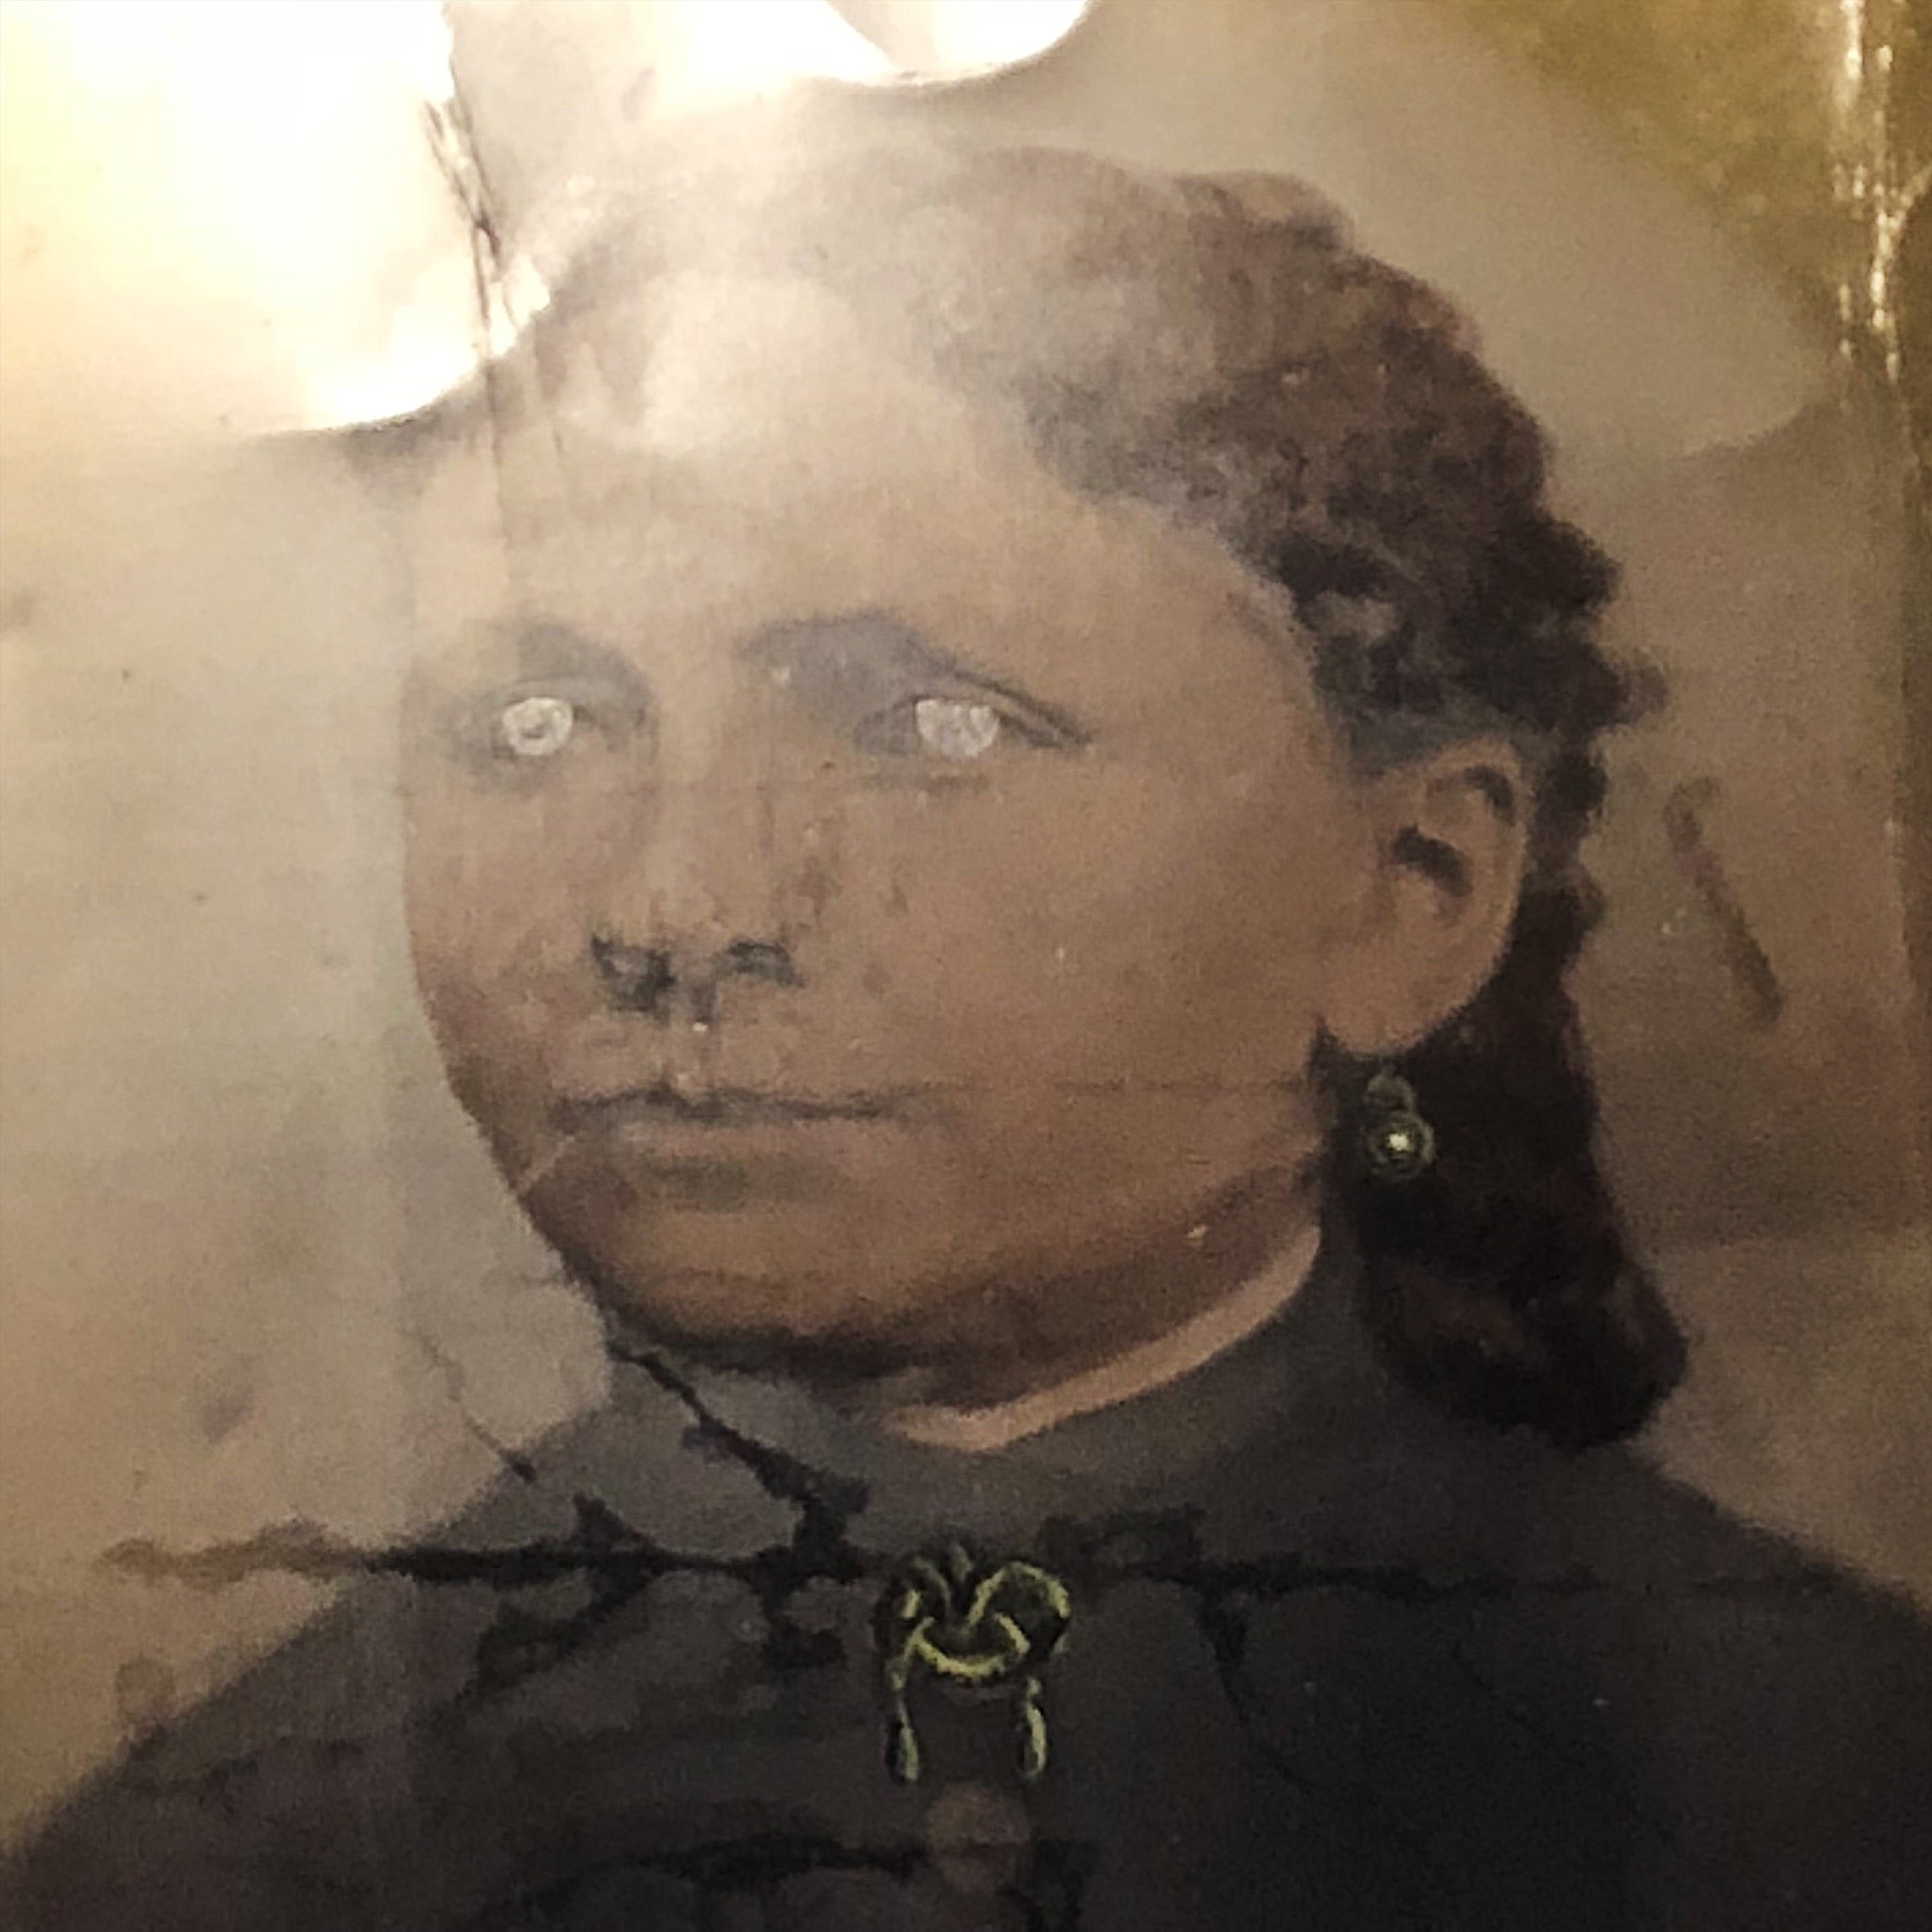 "Antique Tintype of Woman with Creepy Hand Painted Accents - Rare Large Size - 10"" x 8"" - 1800s  - 19th Century"